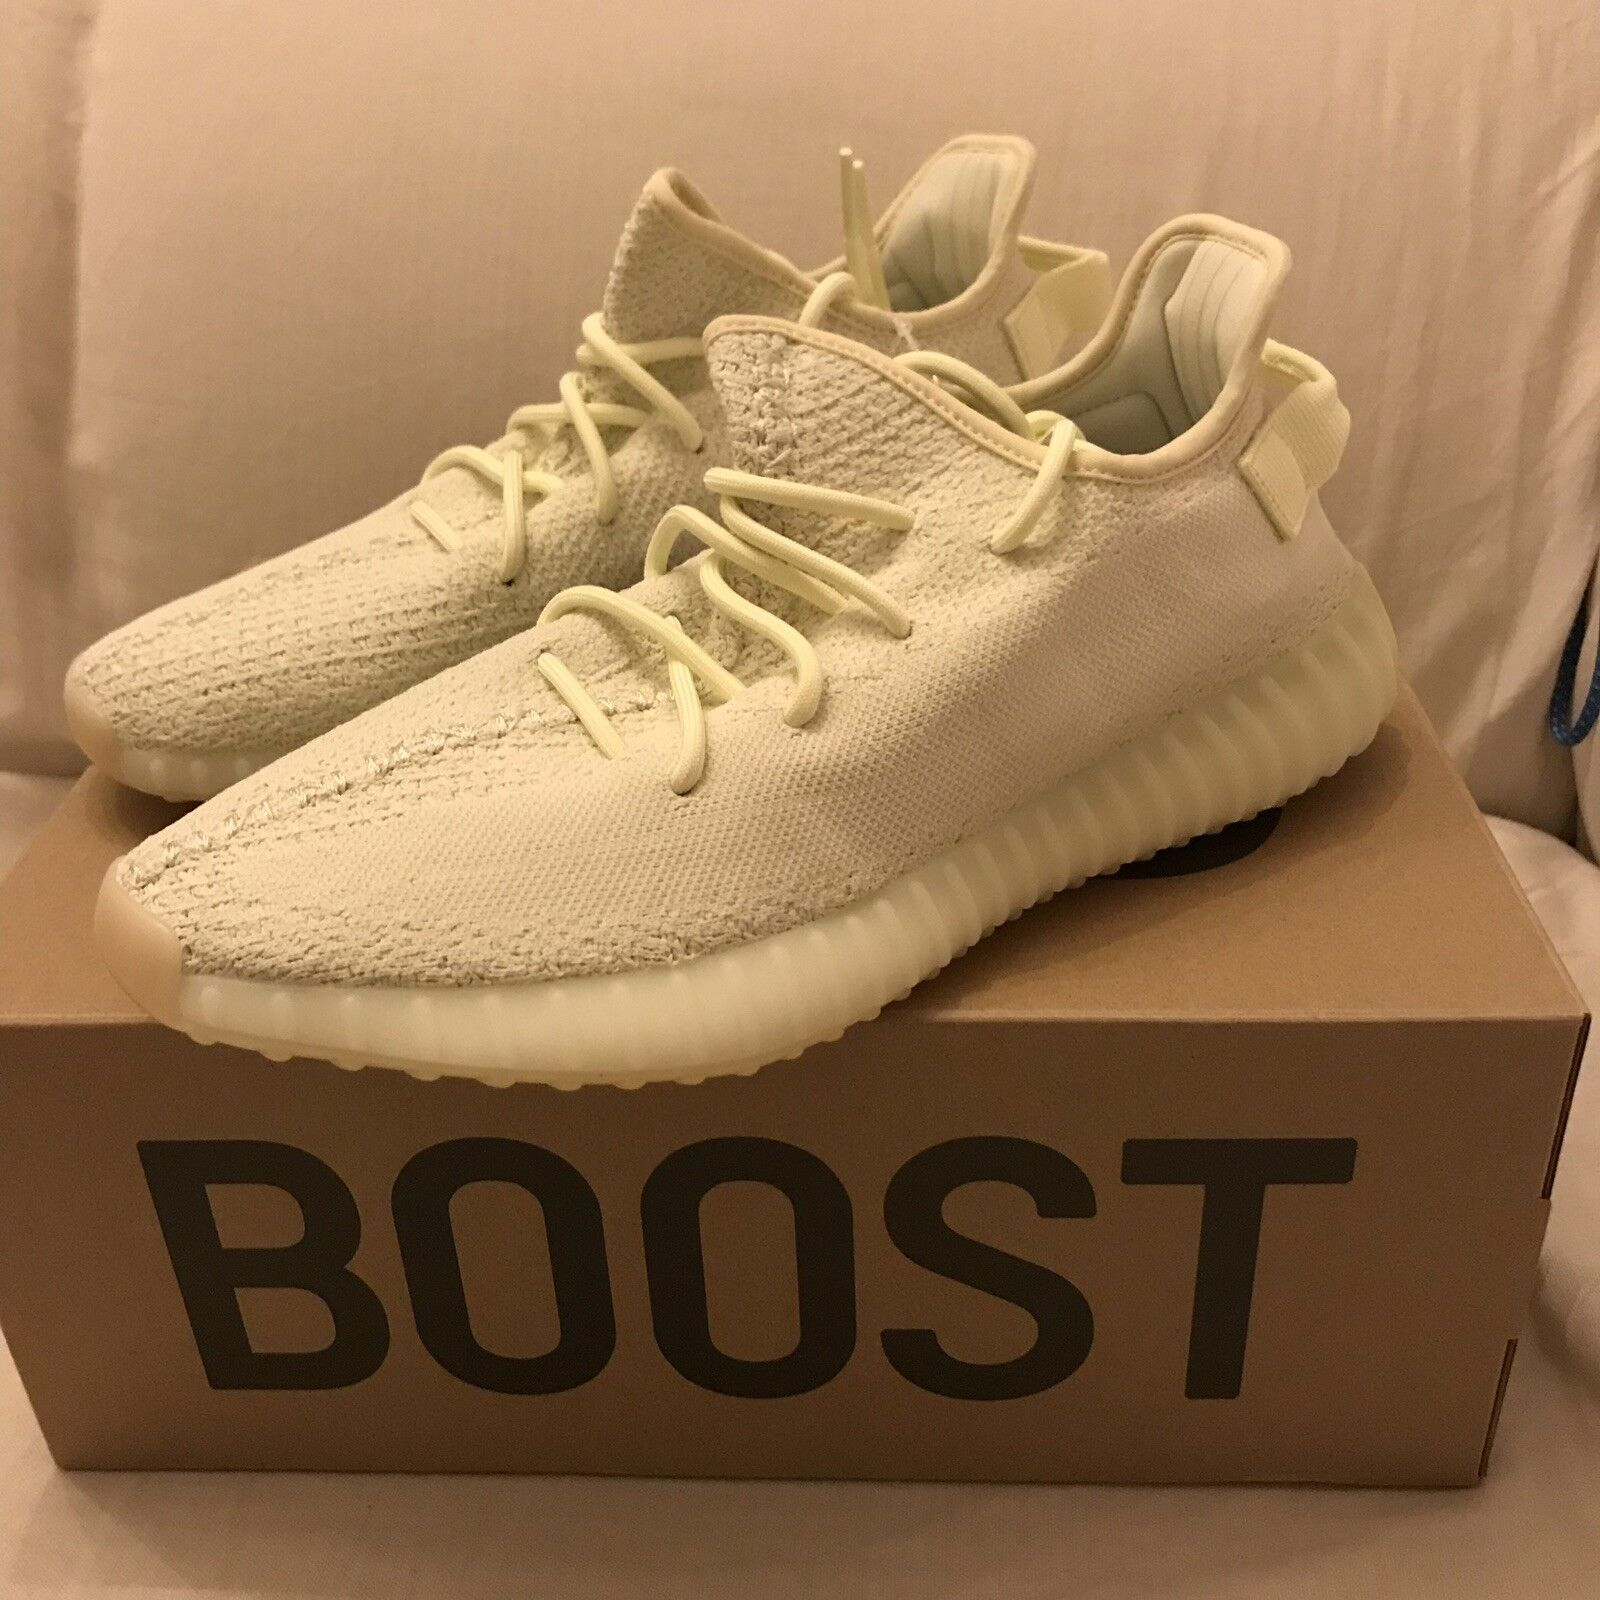 Adidas Yeezy 350 V2 Boost Butter F36980 Brand Brand Brand New Size 11.5 100% Authentic 3859da